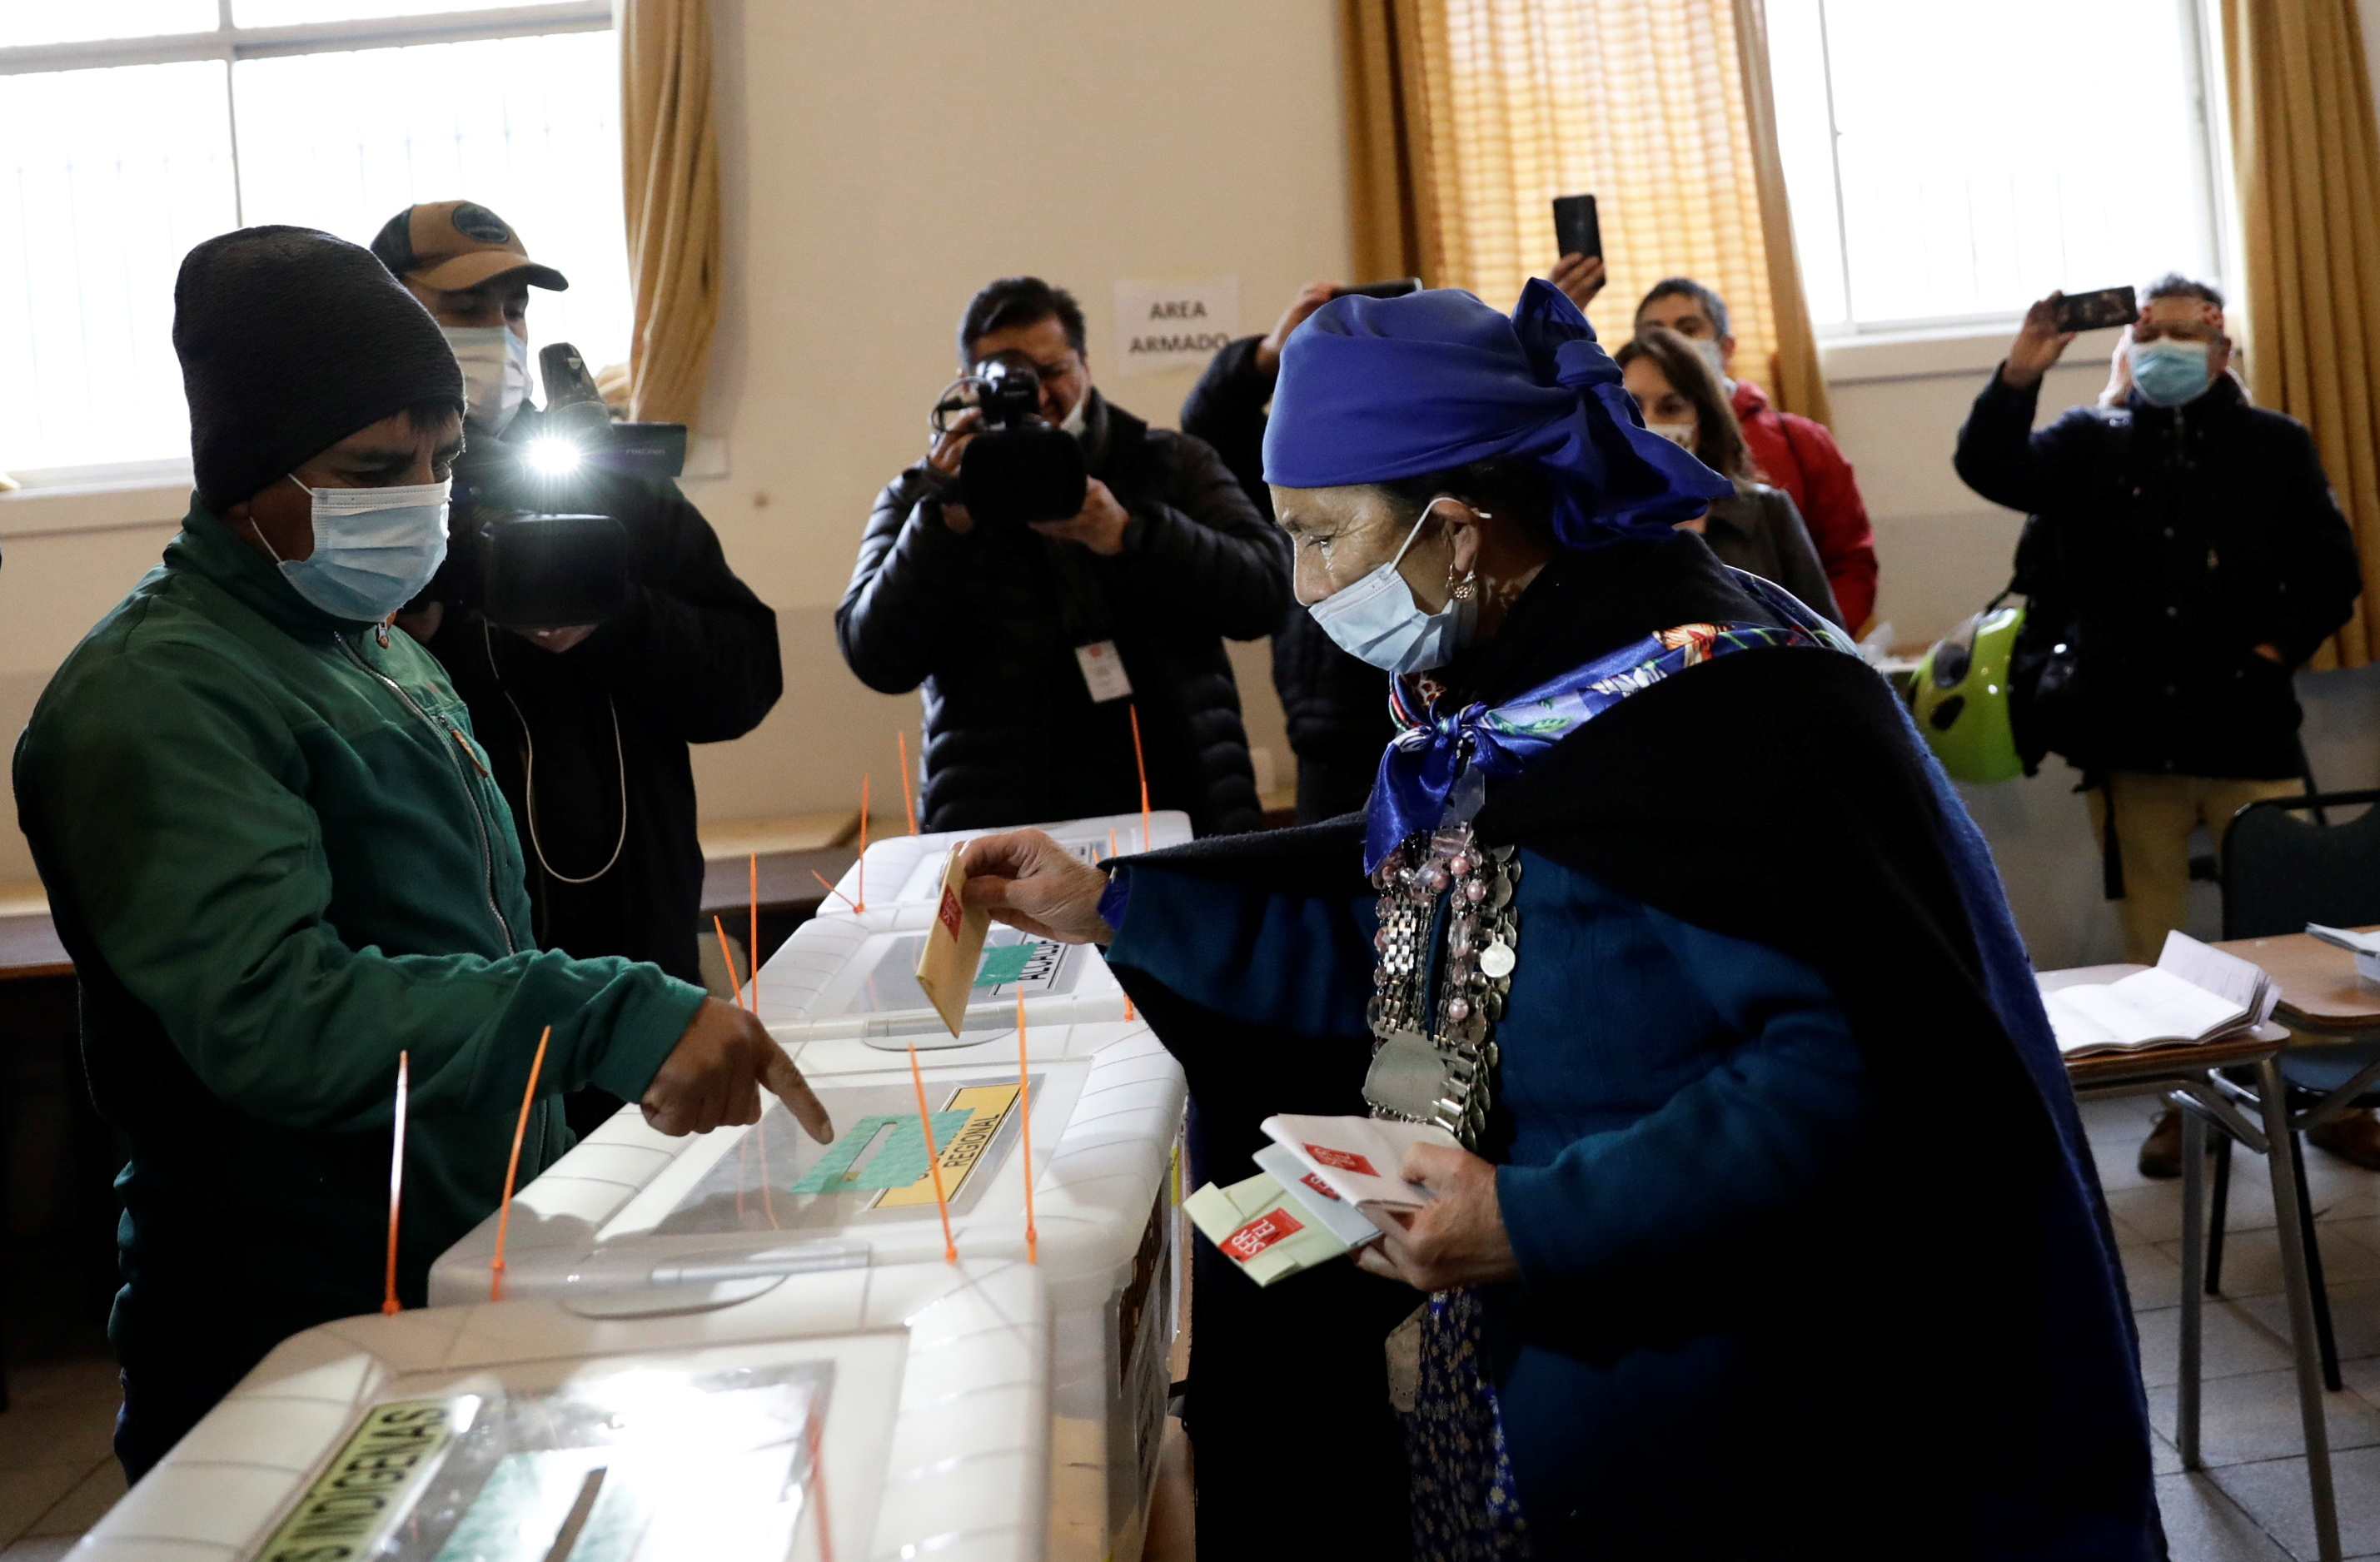 Mapuche spiritual authority and constituent candidate Francisca Linconao casts her vote in the election for governors, mayors, councillors and constitutional assembly members to draft a new constitution to replace Chile's charter, in Temuco, Chile May 16, 2021. REUTERS/Juan Gonzalez